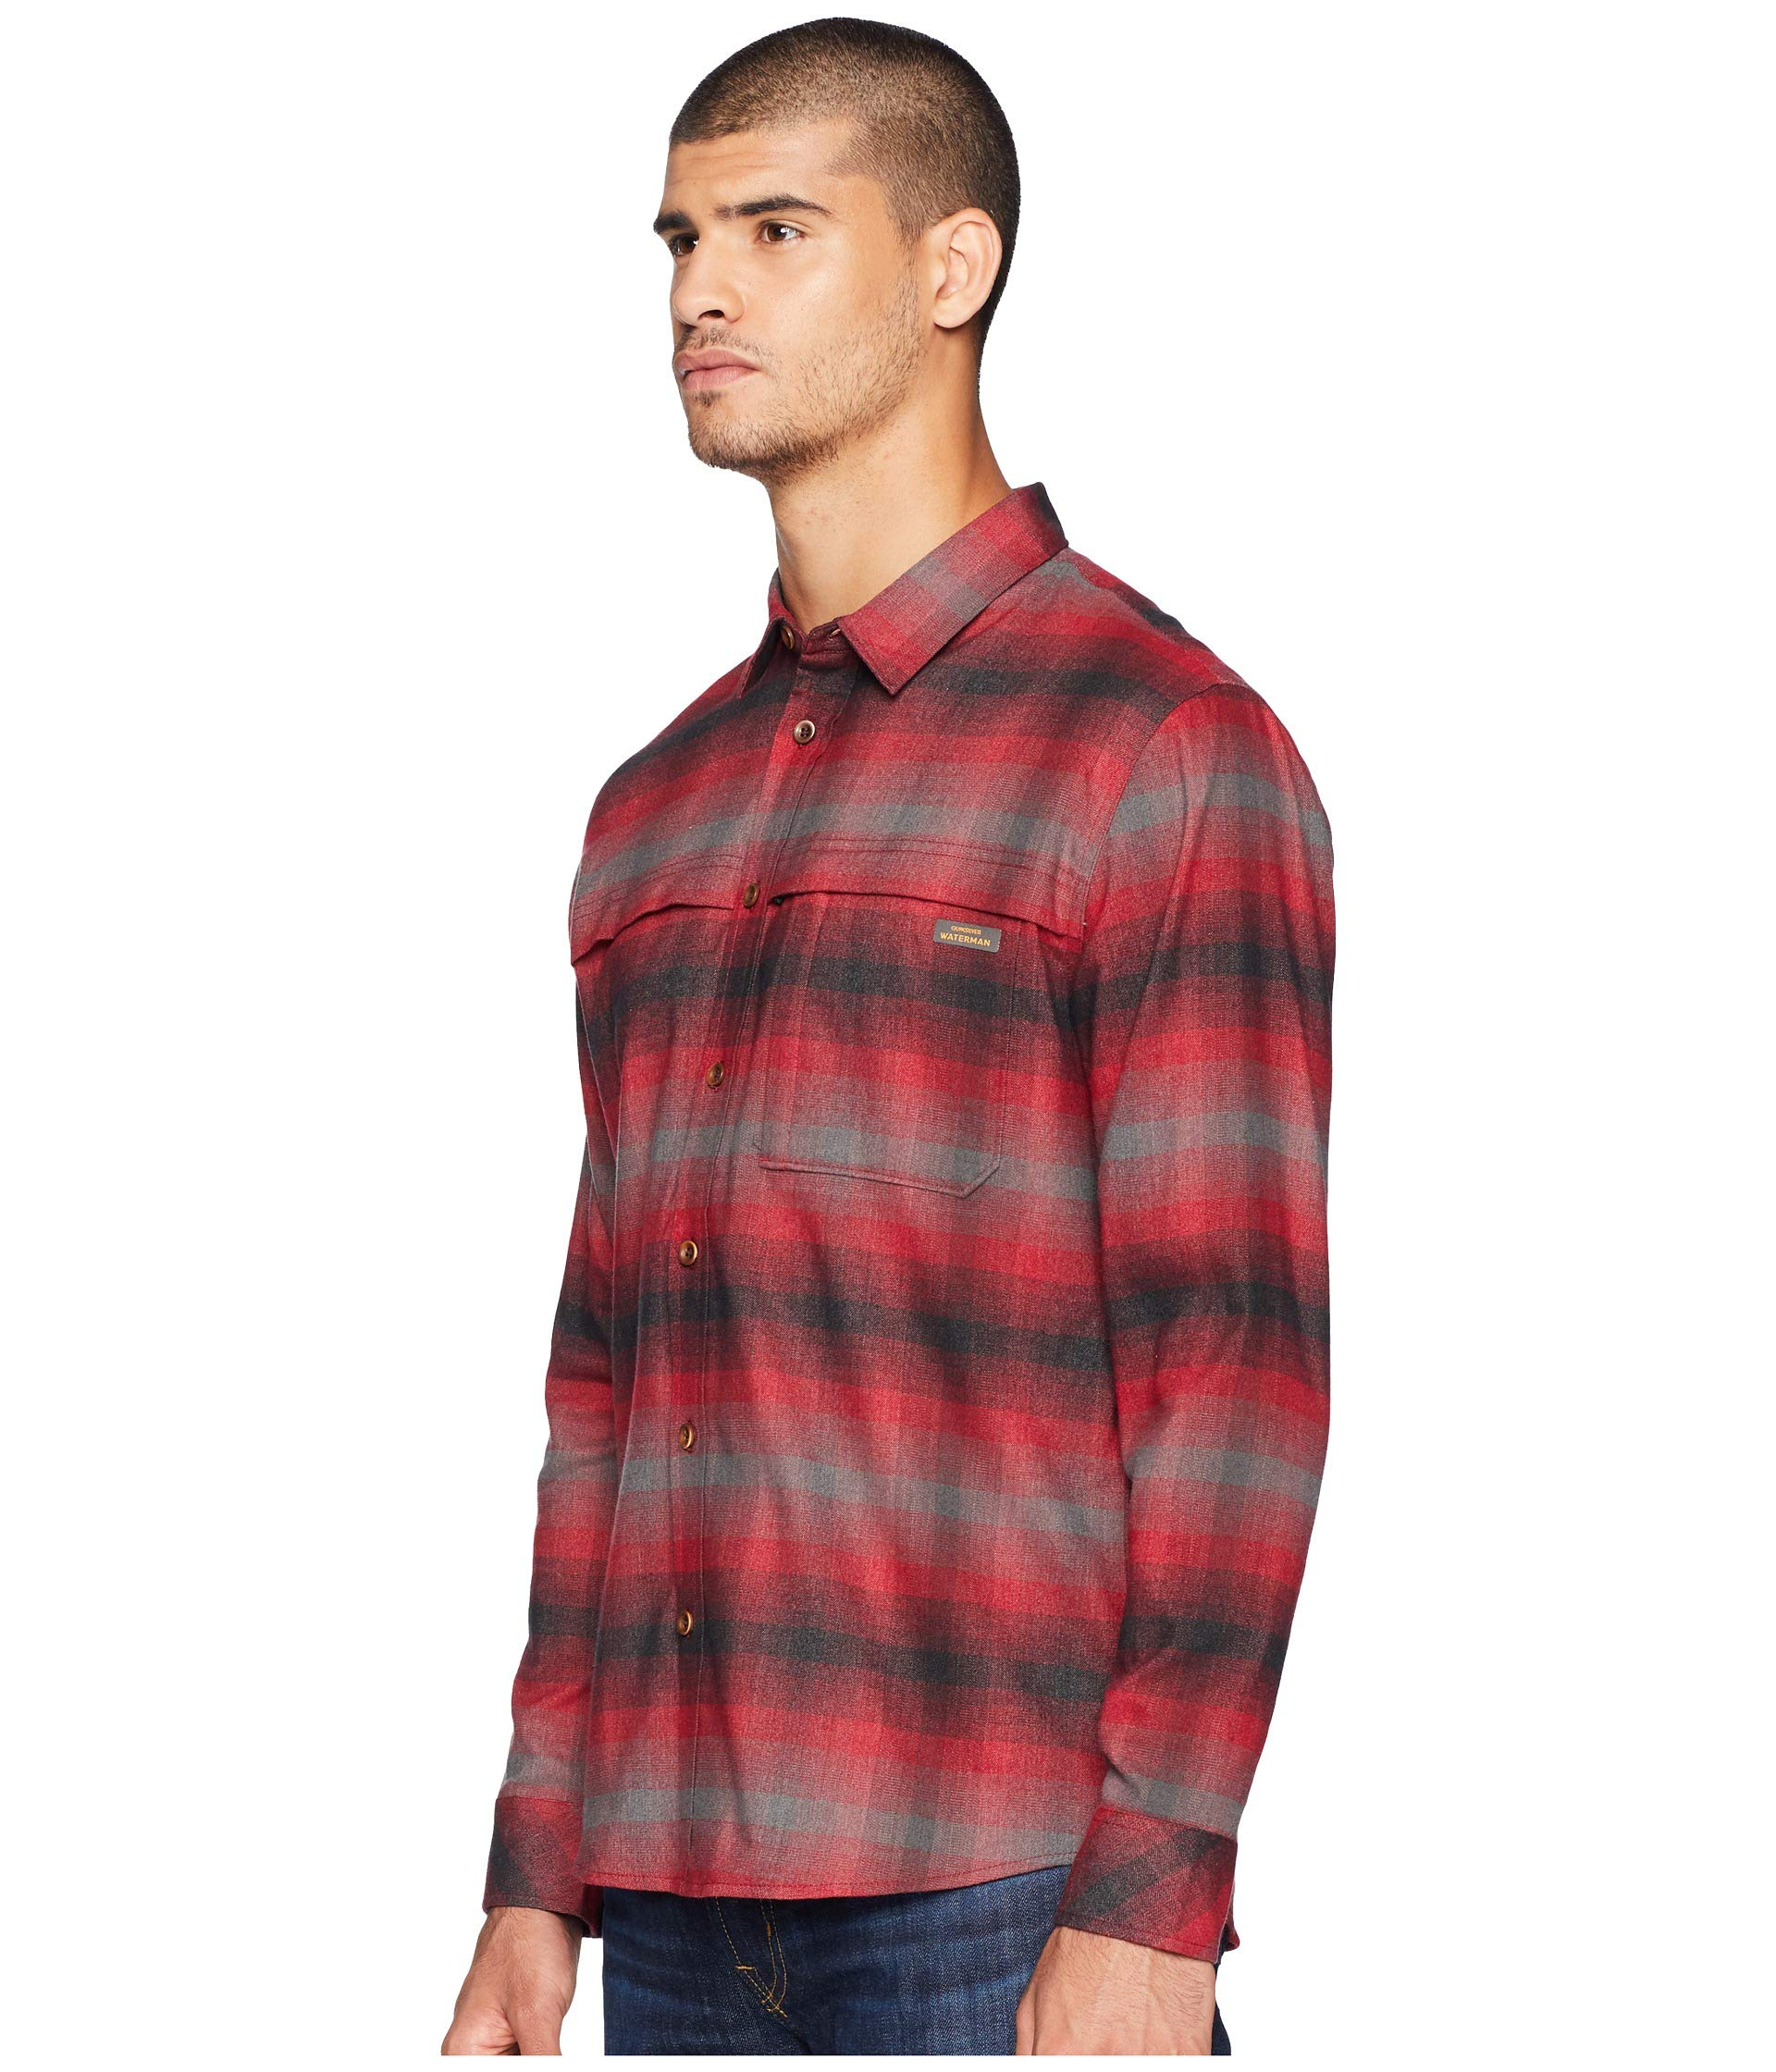 Sleeve Hyper Quiksilver Shirt Red Long Thermo Rio Flannel Waterman xEEwzvqZCX